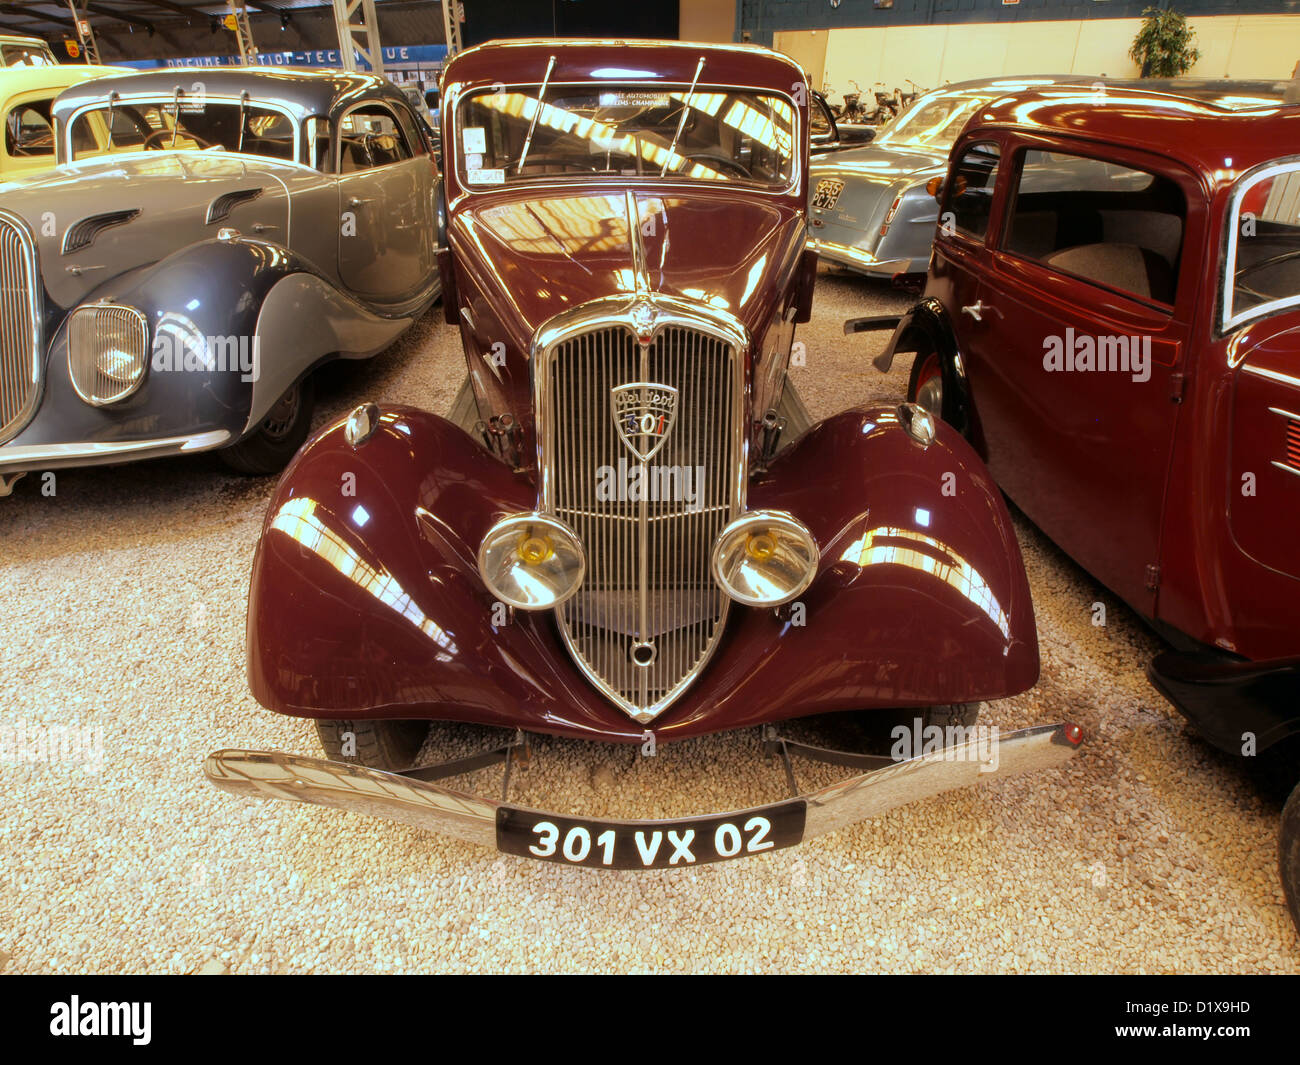 peugeot car museum stockfotos peugeot car museum bilder alamy. Black Bedroom Furniture Sets. Home Design Ideas